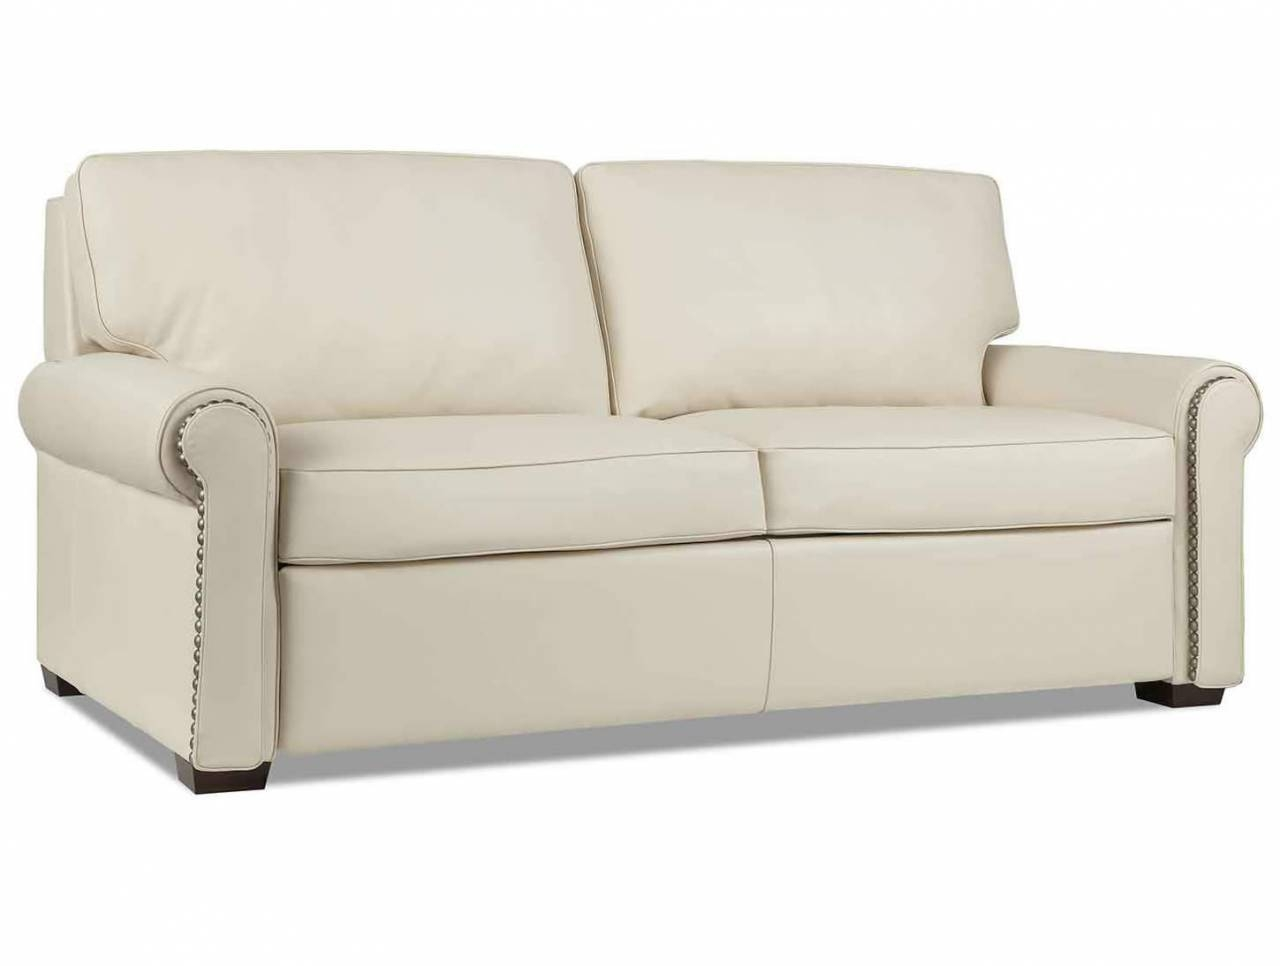 Reese Sleeper Sofa - Sofas u0026&; Chairs Of Minnesota regarding Comfortable Sofas and Chairs (  sc 1 st  Menter Architects & 2018 Latest Comfortable Sofas and Chairs